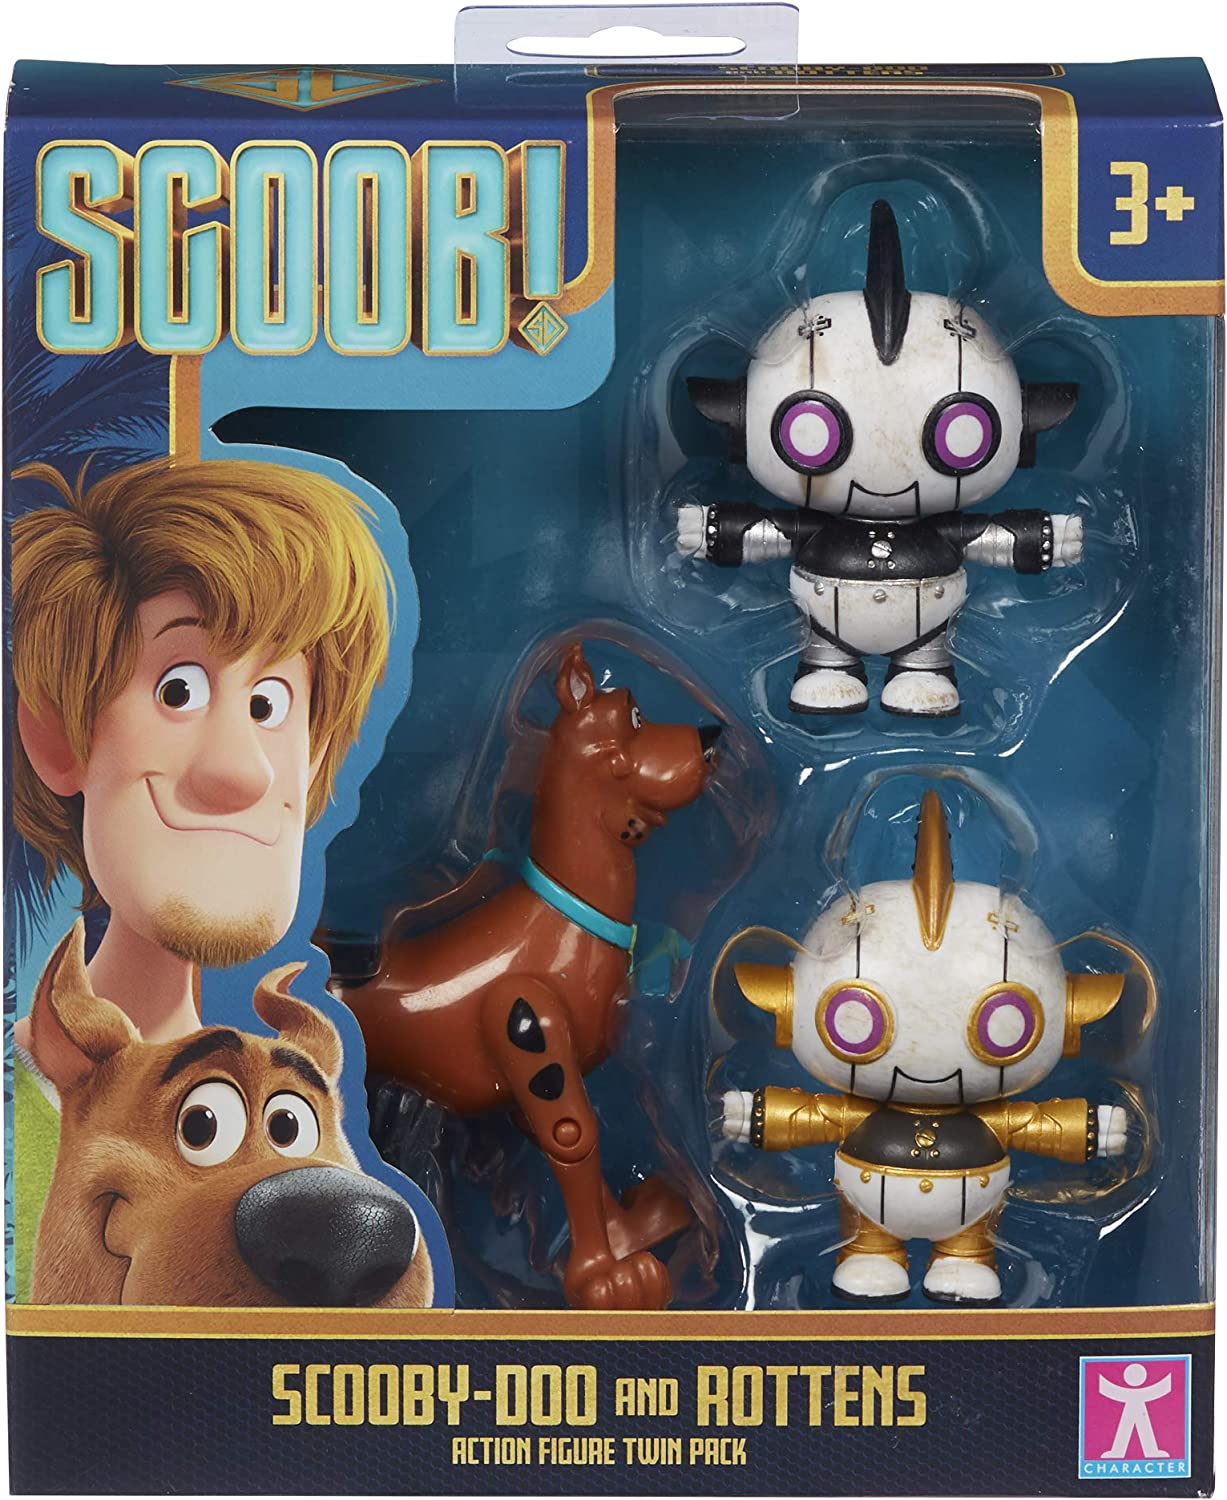 scooby and Rottens New Scooby Doo Movie Twin Pack Action Figures